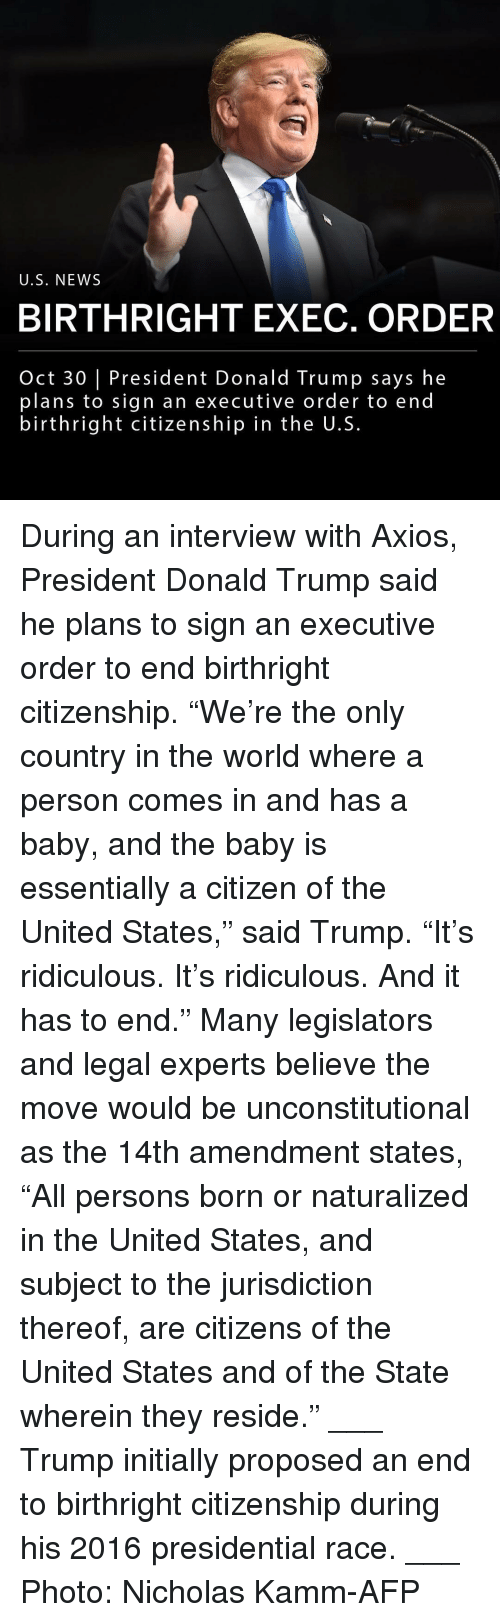 "executive order: U.S. NEWS  BIRTHRIGHT EXEC. ORDER  Oct 30 President Donald Trump says he  plans to sign an executive order to end  birthright citizenship in the U.S. During an interview with Axios, President Donald Trump said he plans to sign an executive order to end birthright citizenship. ""We're the only country in the world where a person comes in and has a baby, and the baby is essentially a citizen of the United States,"" said Trump. ""It's ridiculous. It's ridiculous. And it has to end."" Many legislators and legal experts believe the move would be unconstitutional as the 14th amendment states, ""All persons born or naturalized in the United States, and subject to the jurisdiction thereof, are citizens of the United States and of the State wherein they reside."" ___ Trump initially proposed an end to birthright citizenship during his 2016 presidential race. ___ Photo: Nicholas Kamm-AFP"